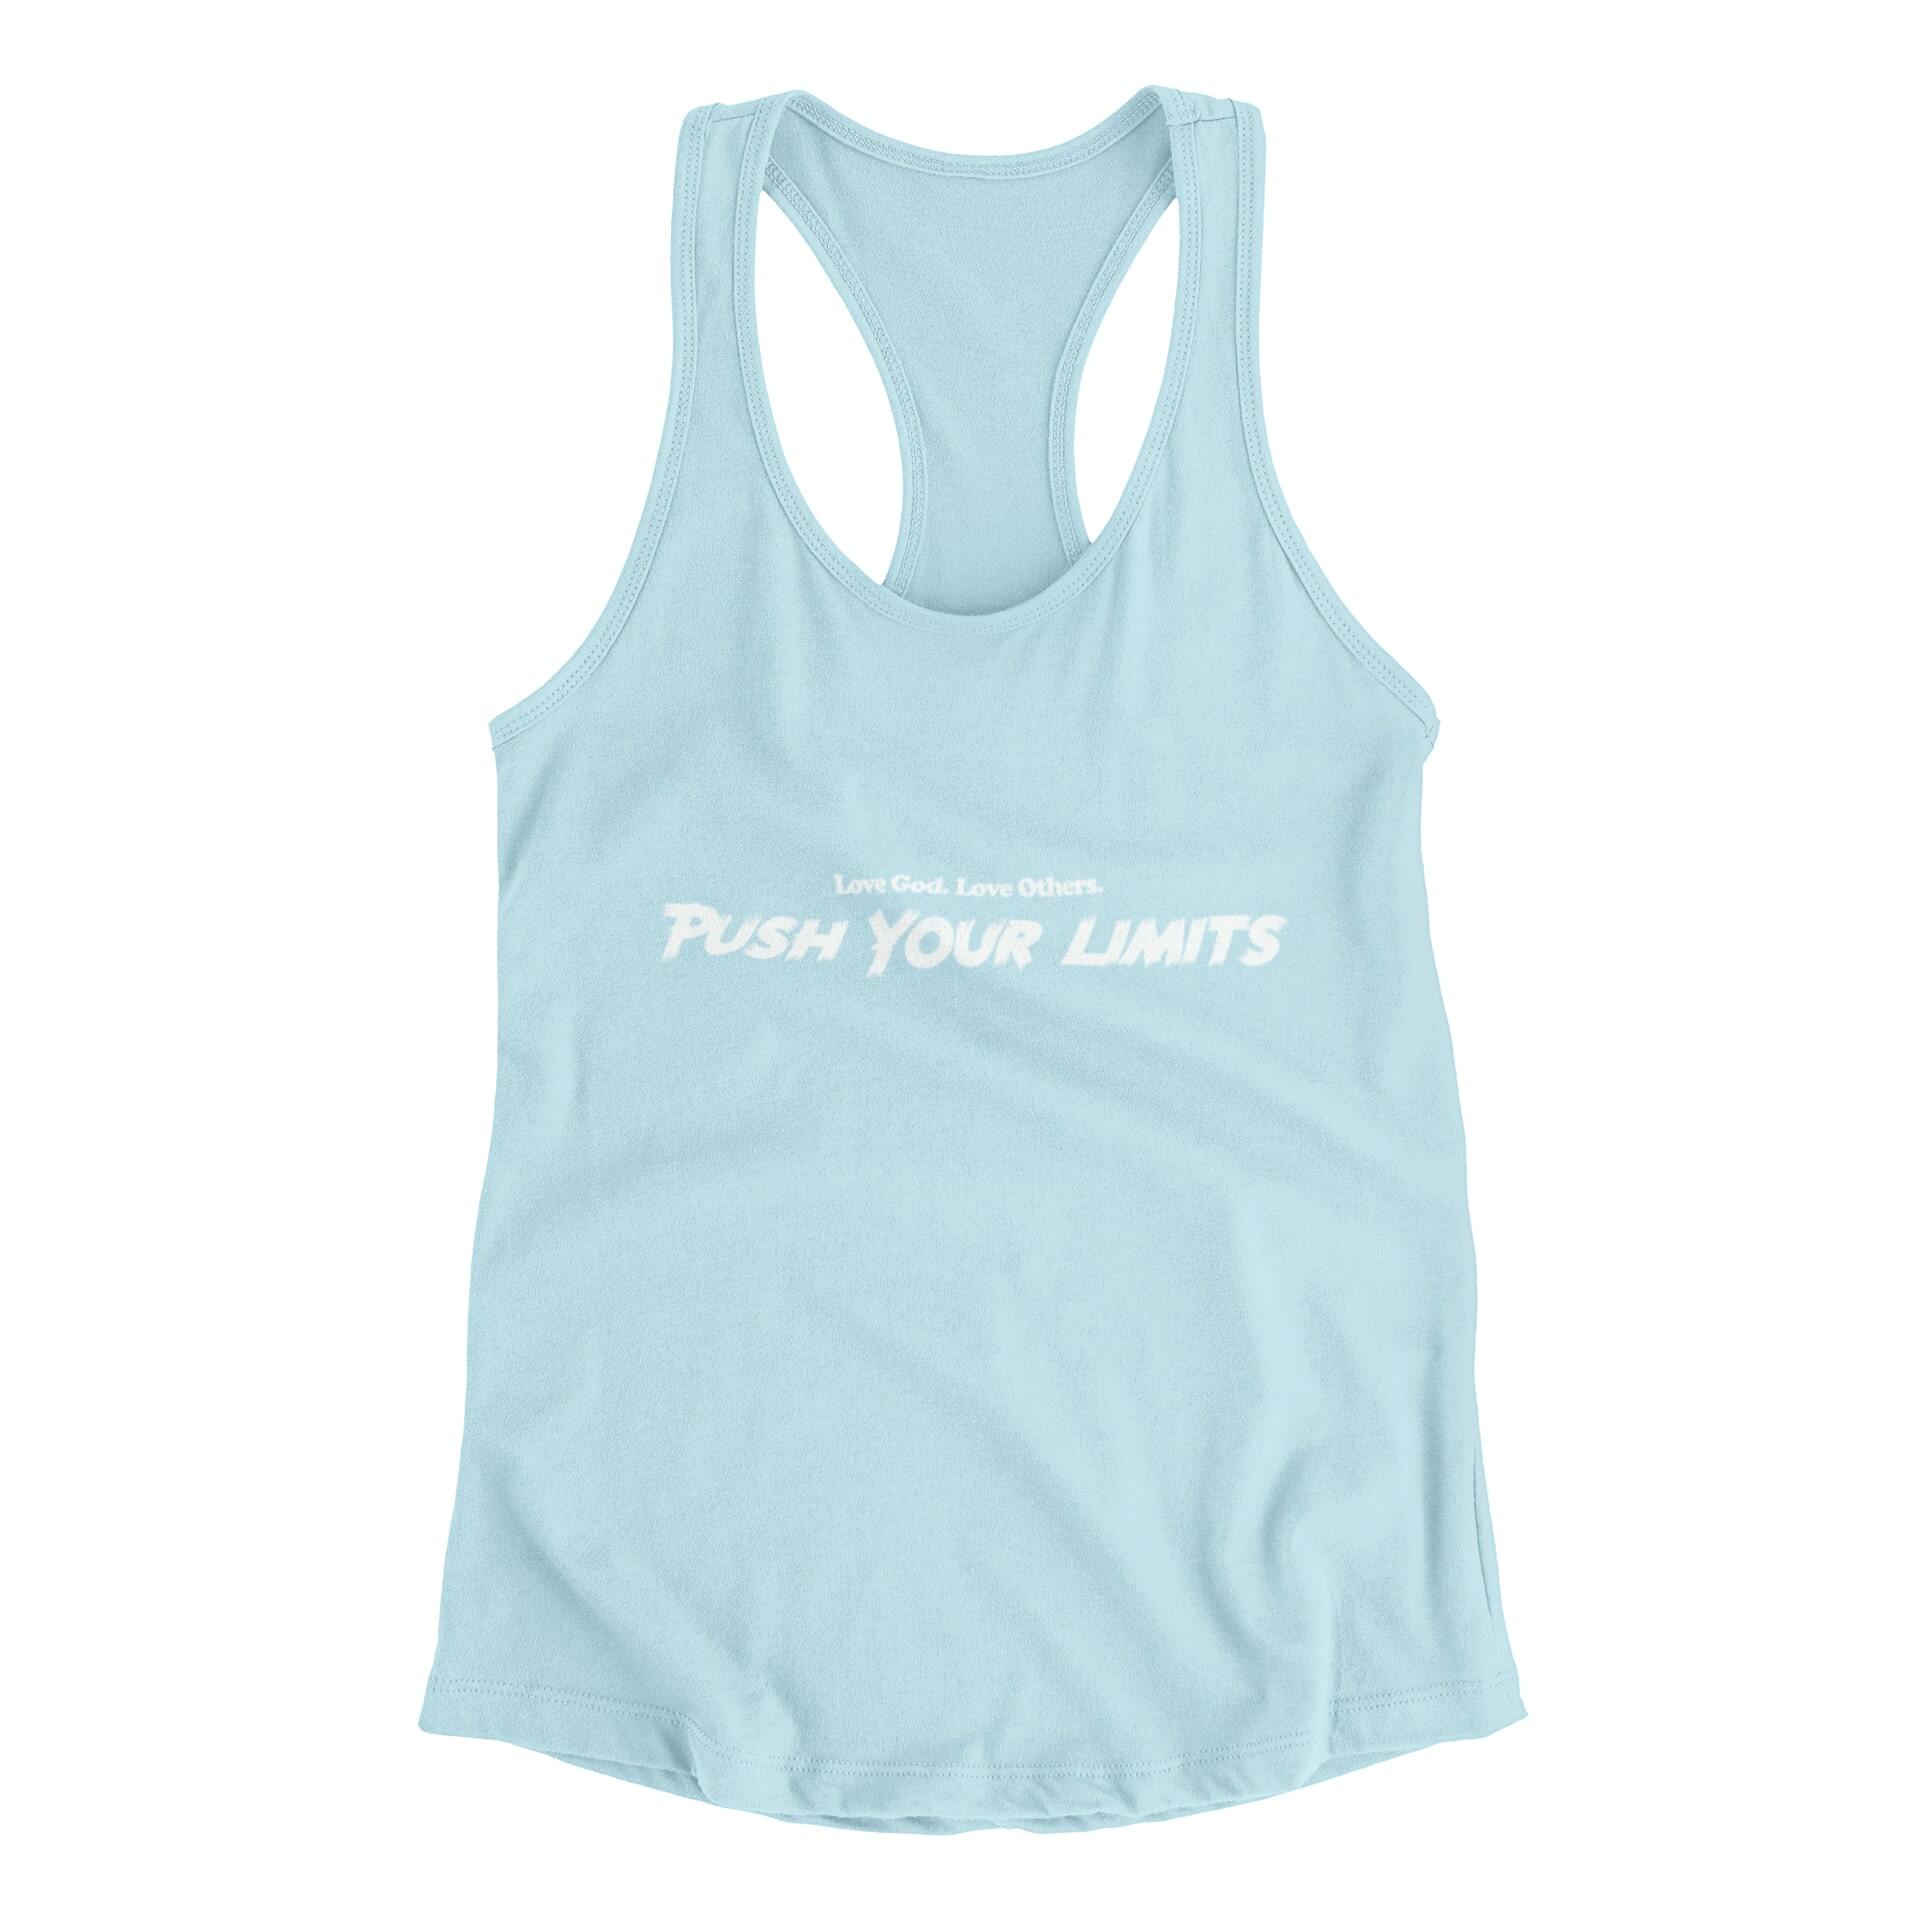 Push Your Limits Tank Top